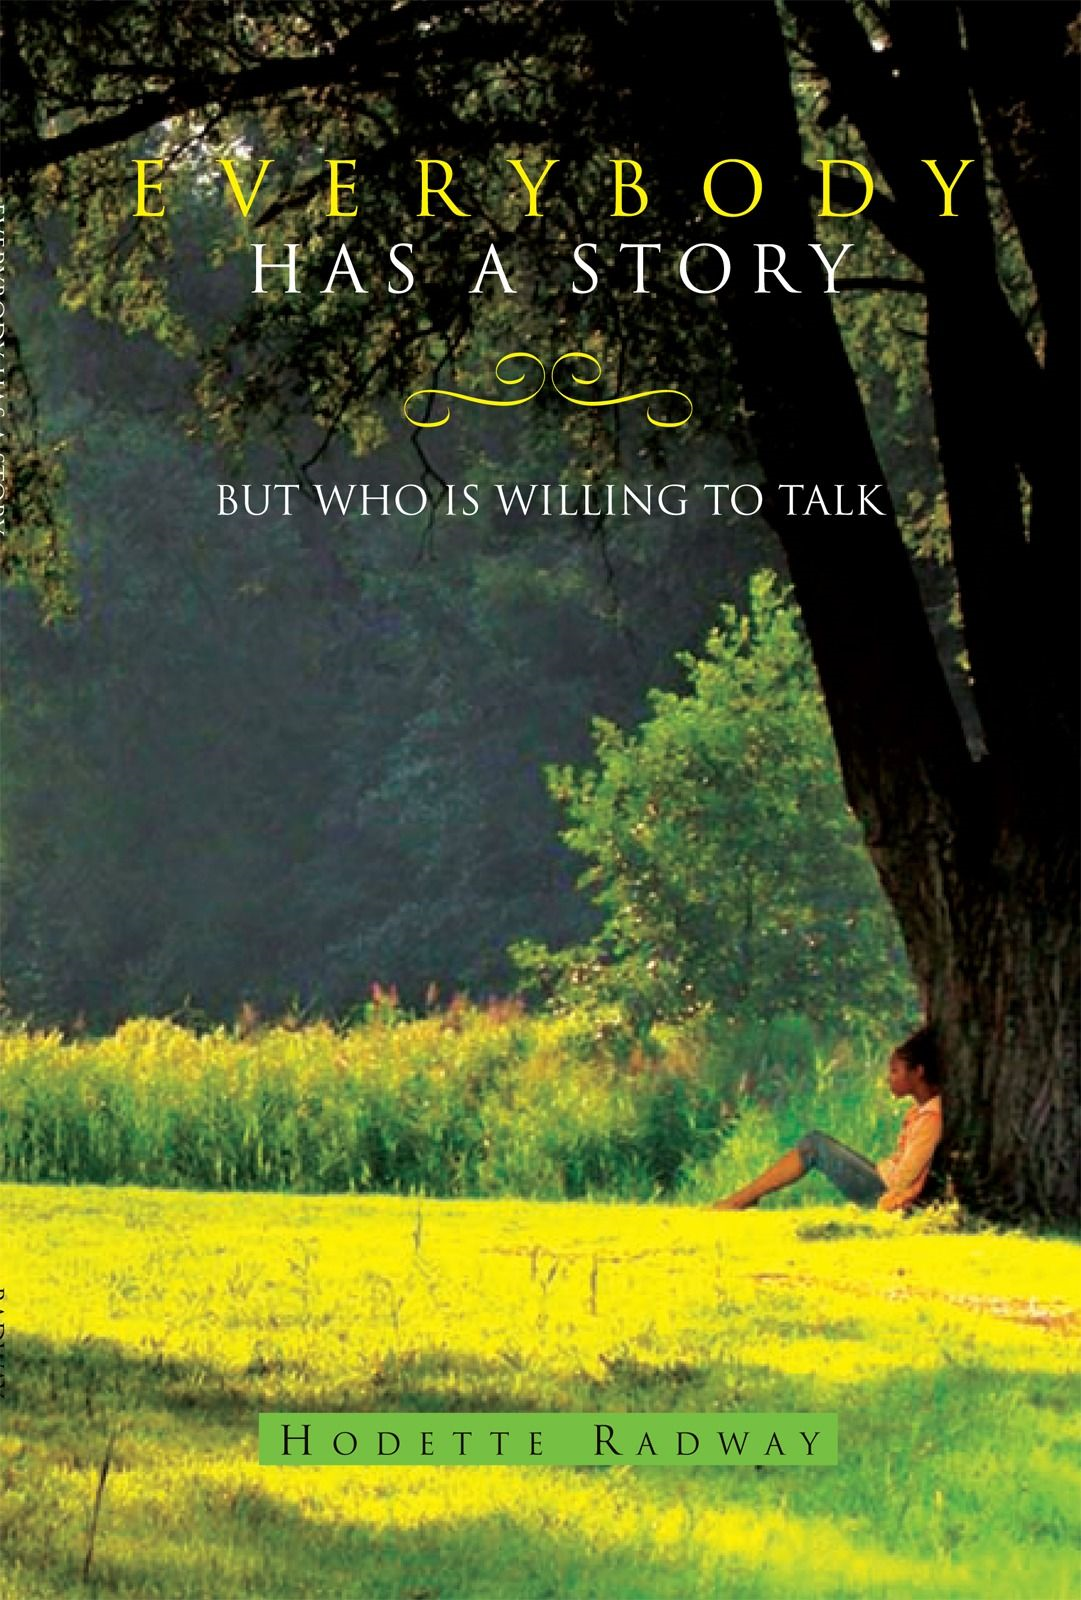 Everybody Has a Story By: Hodette Radway